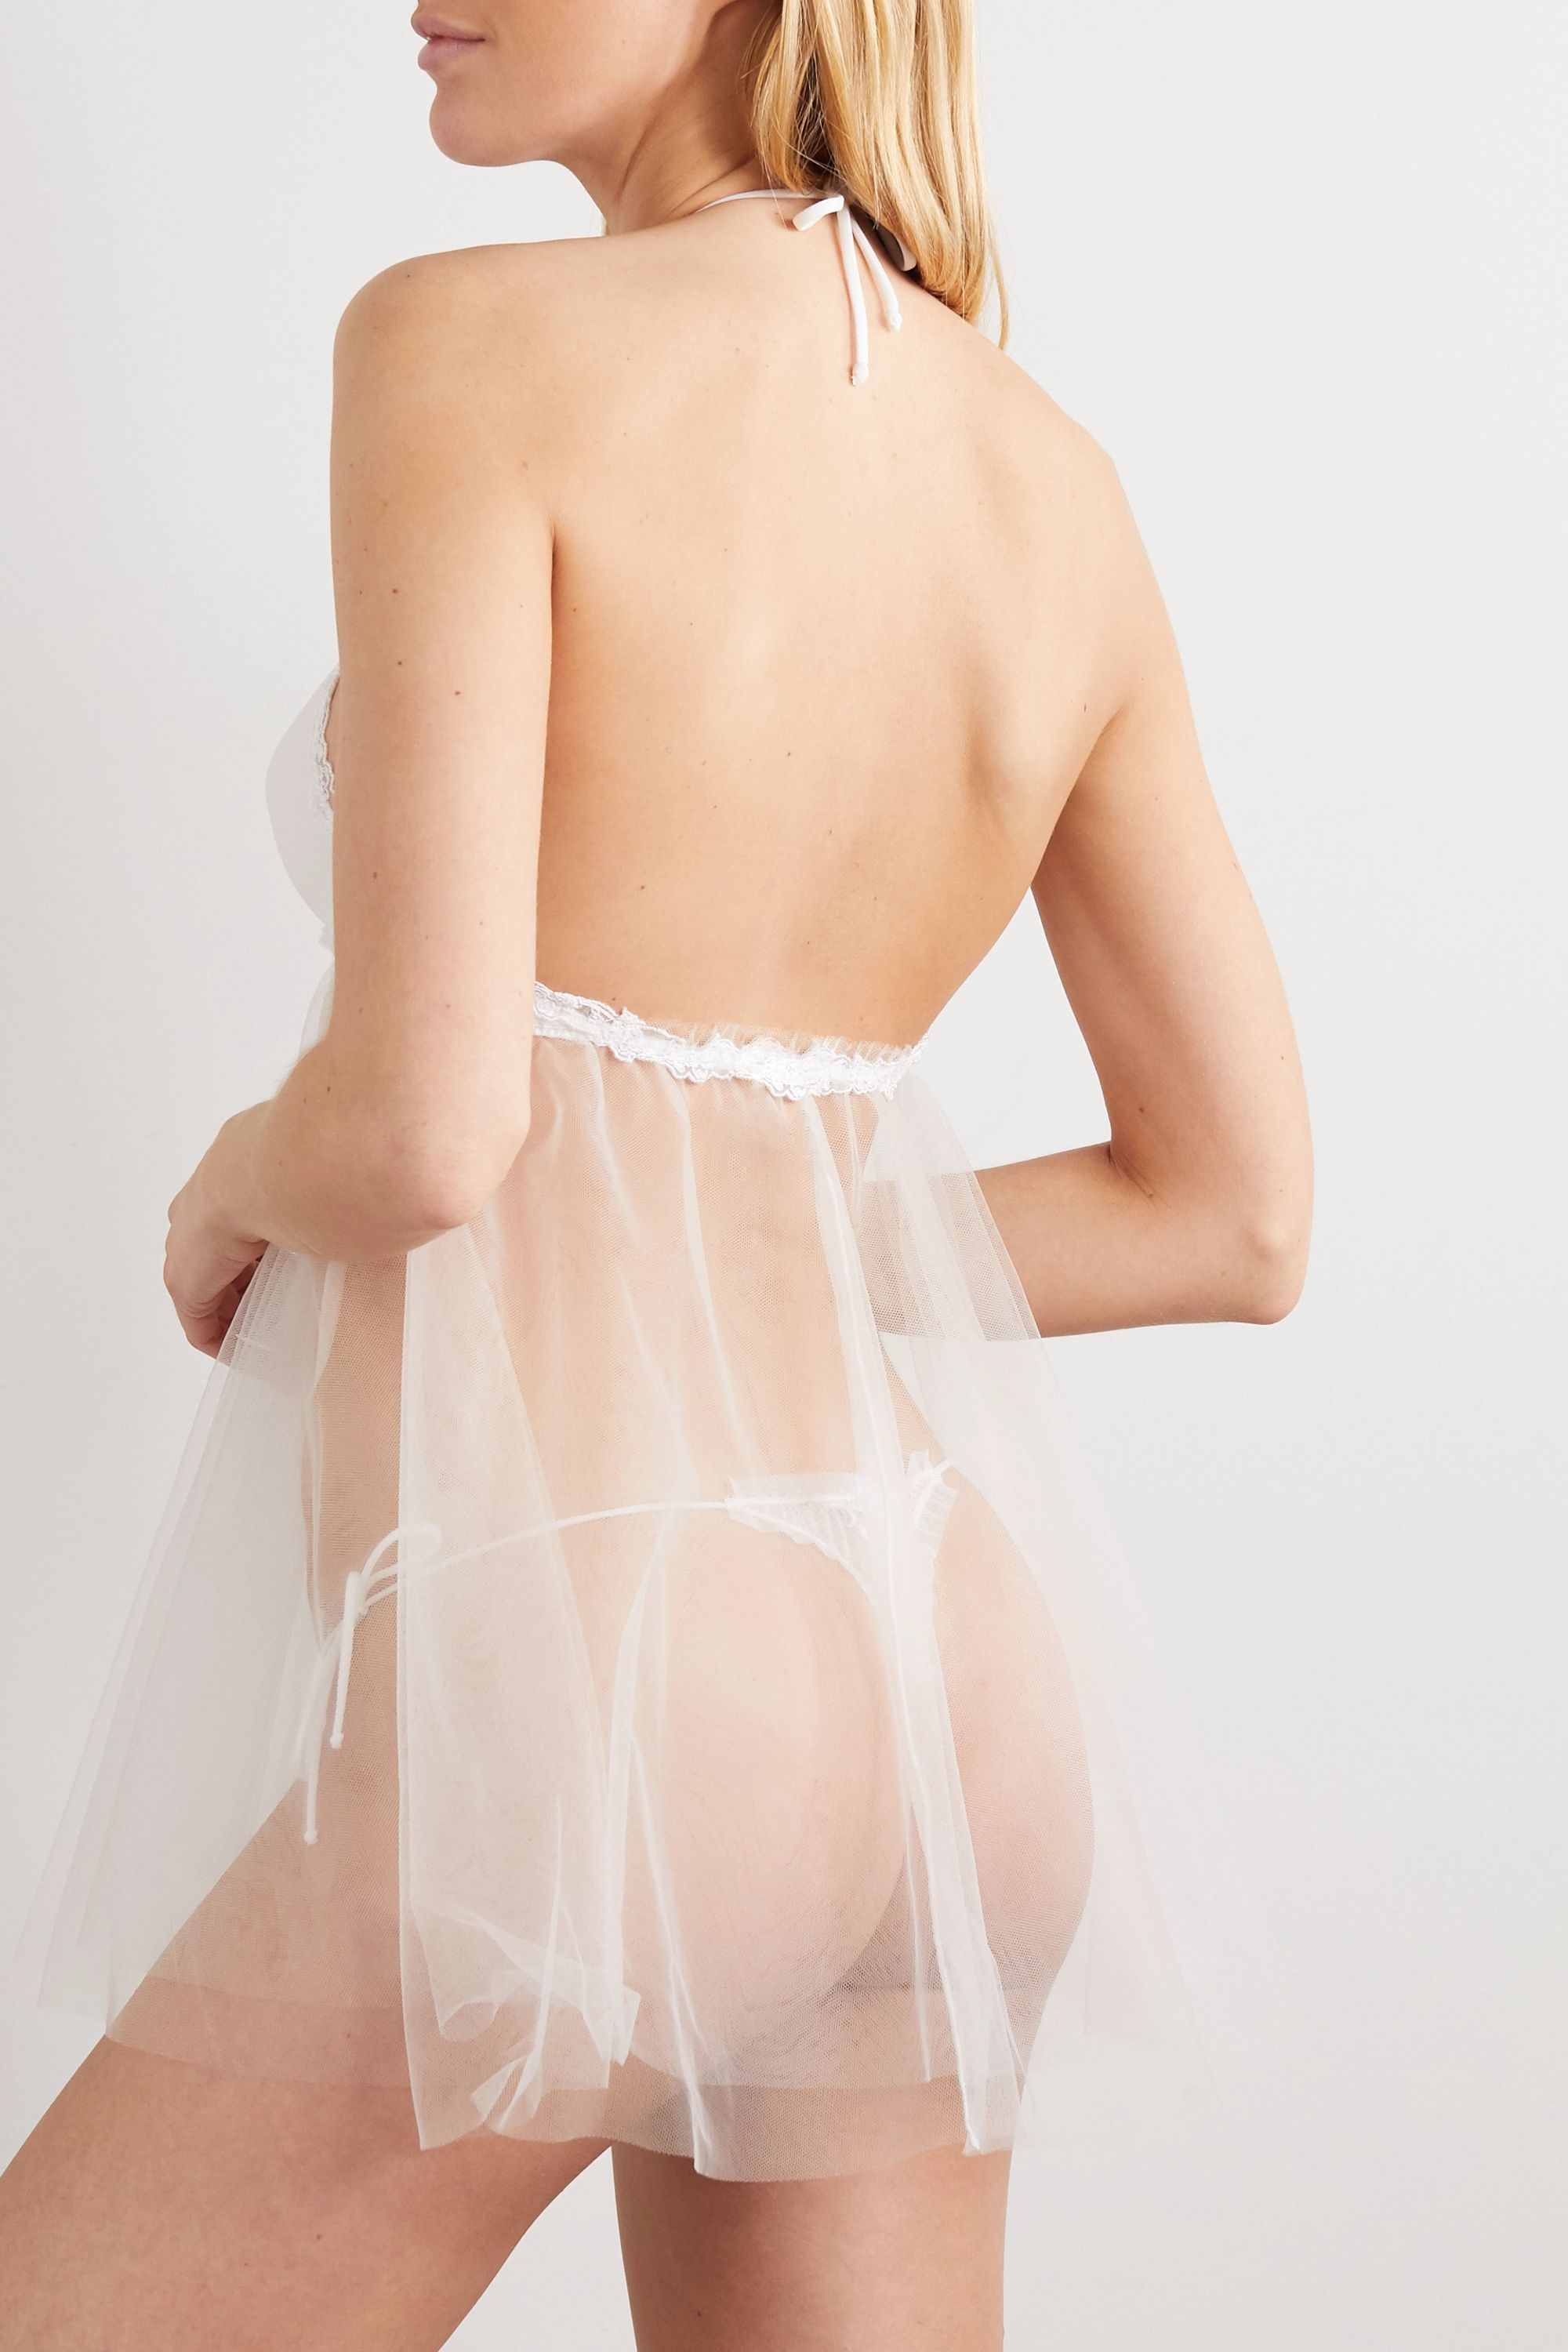 La Perla Miss Sunshine lace-trimmed stretch-tulle chemise and thong set